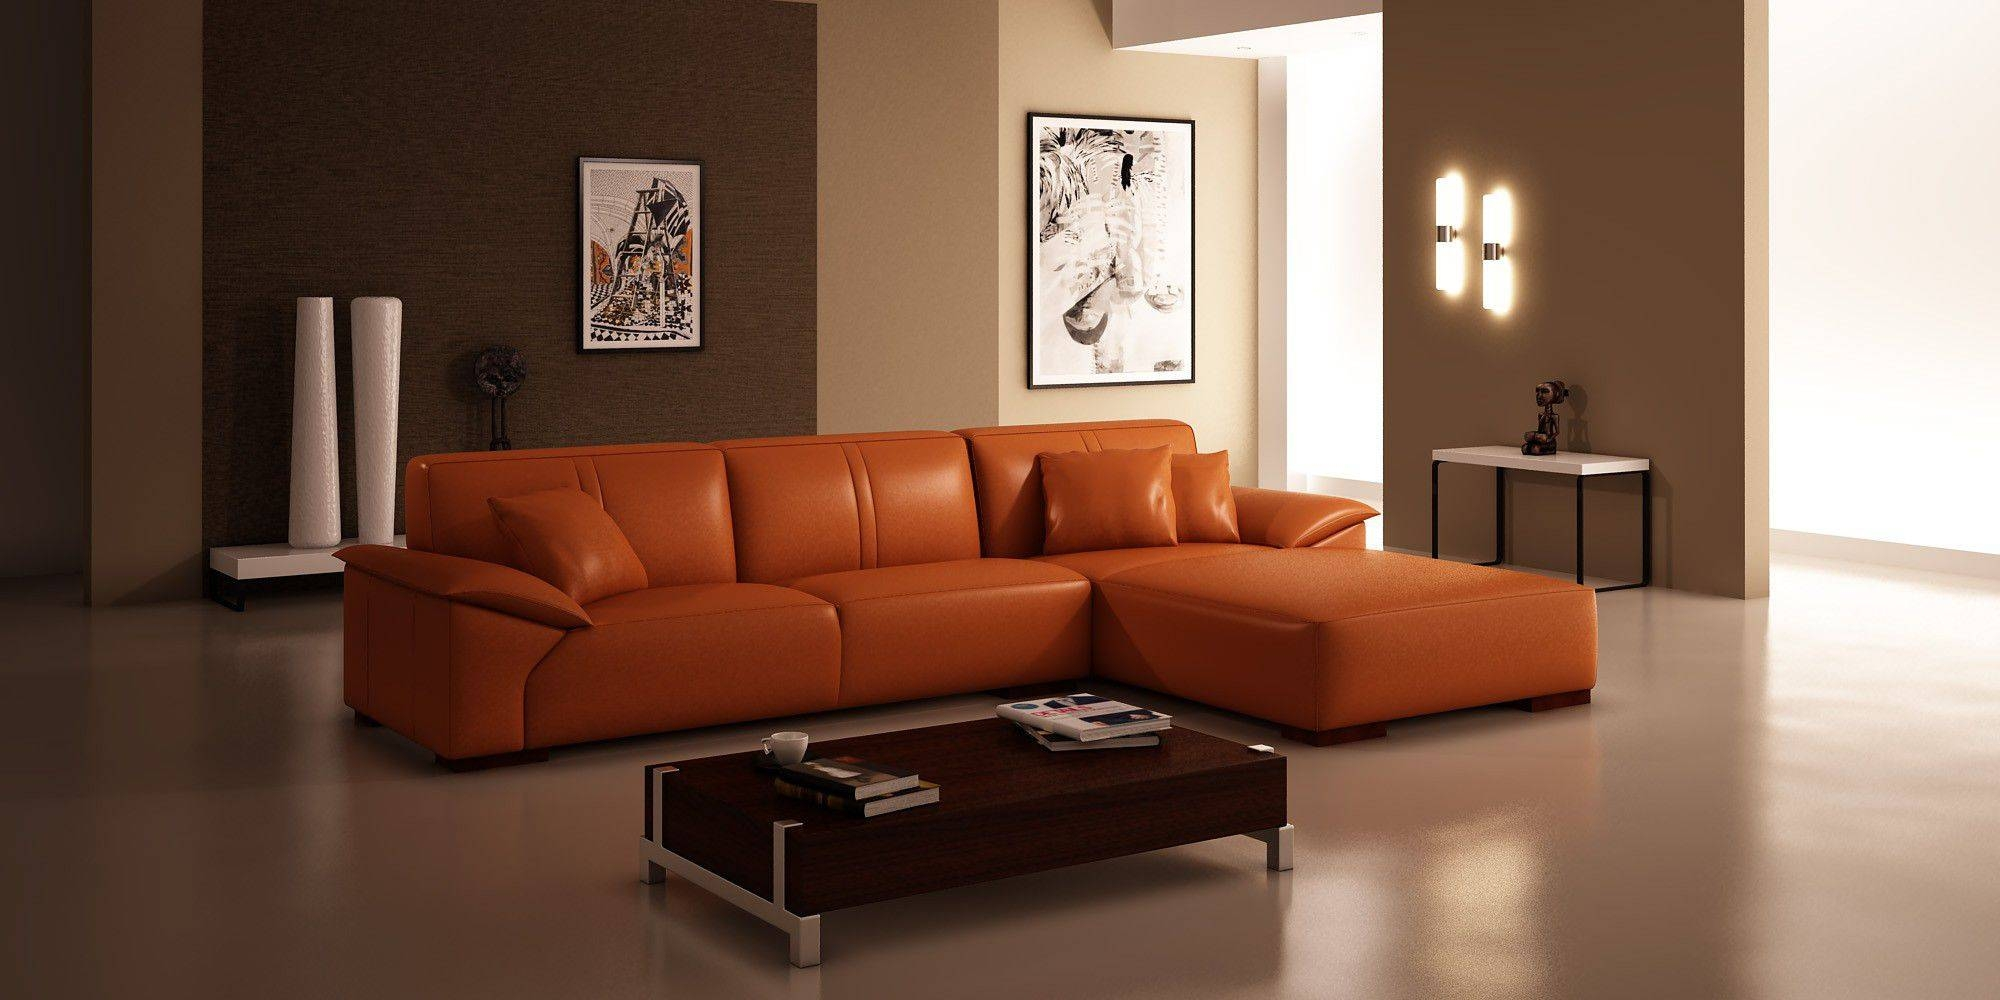 Orange Sofa Interior Design Winsome Living Room Furniture. Orange with regard to Orange Sofa Chairs (Image 15 of 15)